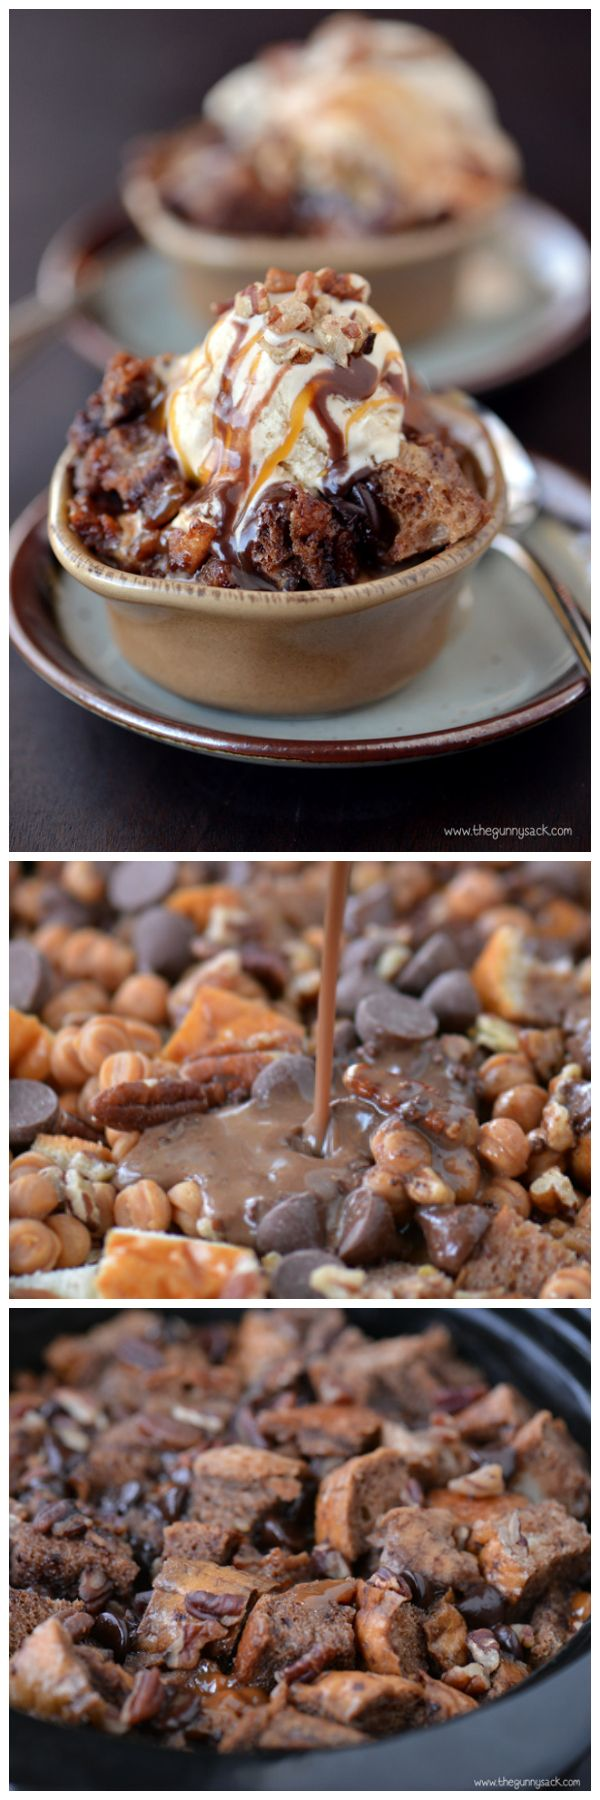 This Slow Cooker Chocolate Turtle Bread Pudding recipe is a warm, comforting dessert with chocolate, caramel and pecans.